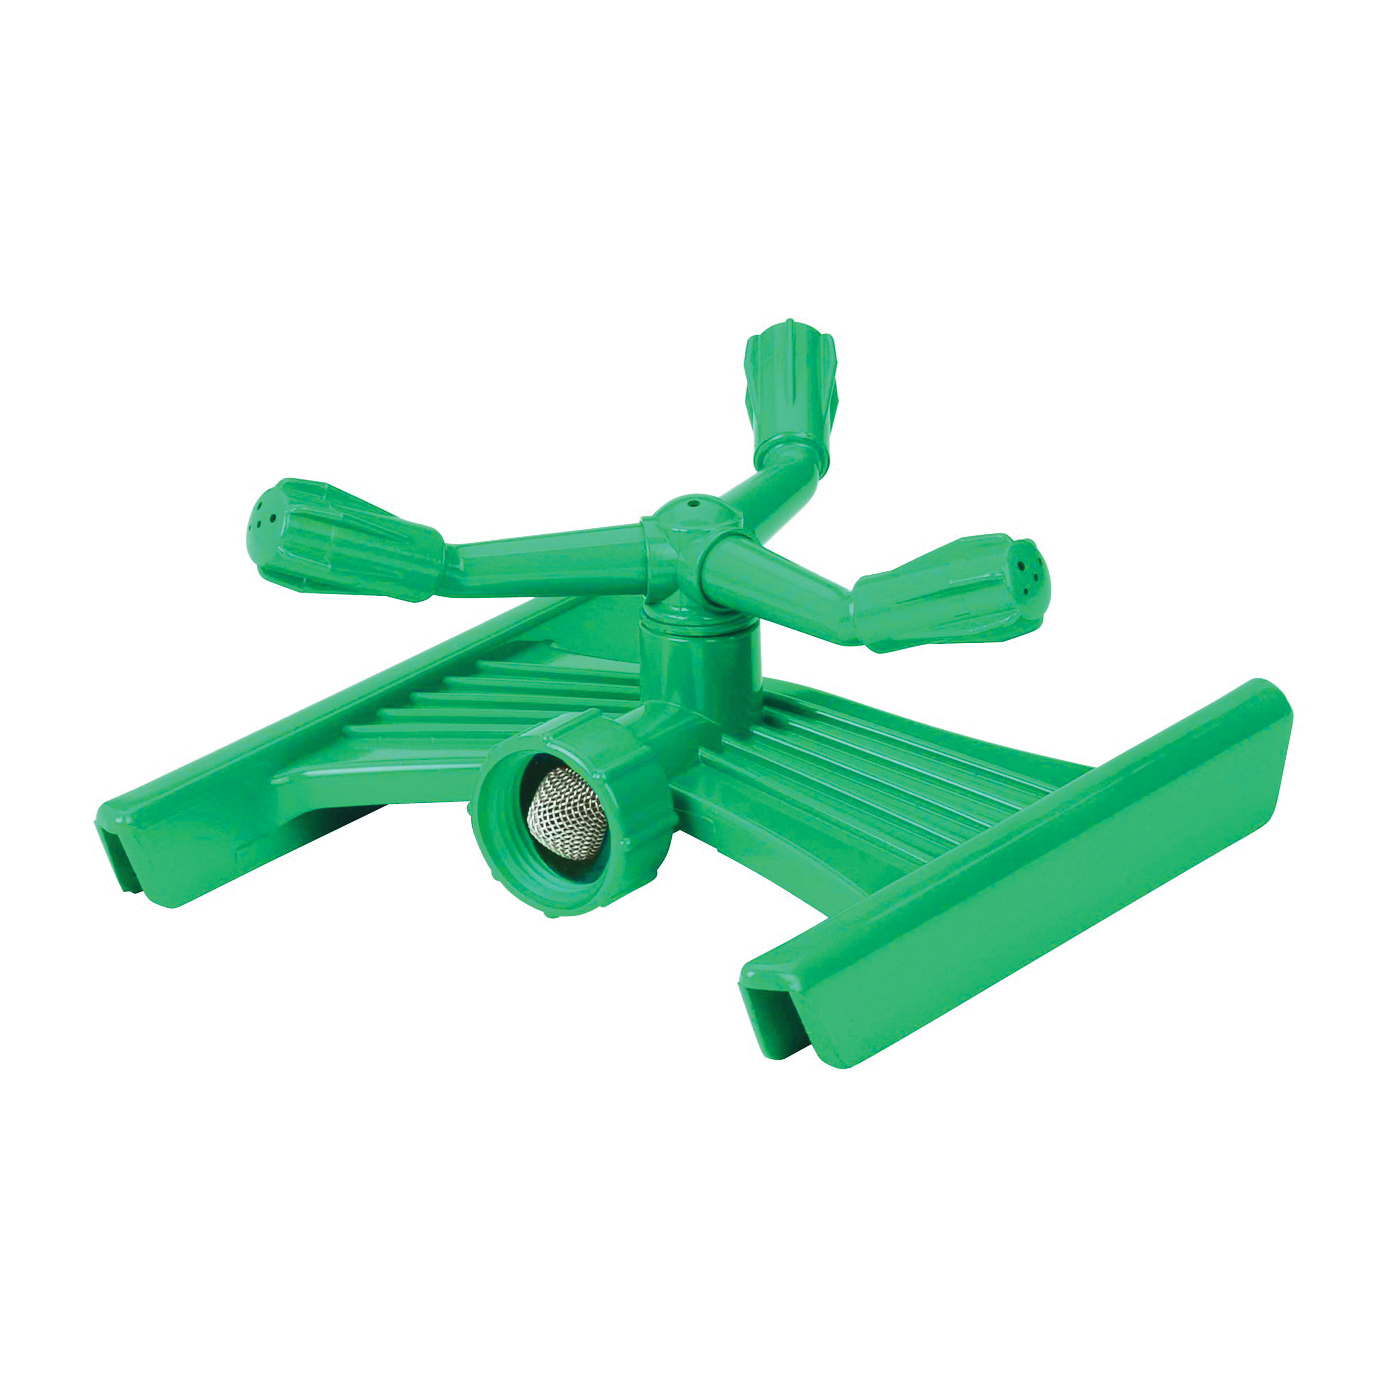 Picture of Gilmour 883 Whirling Sprinkler, 50 ft, Full-Circle, Polymer